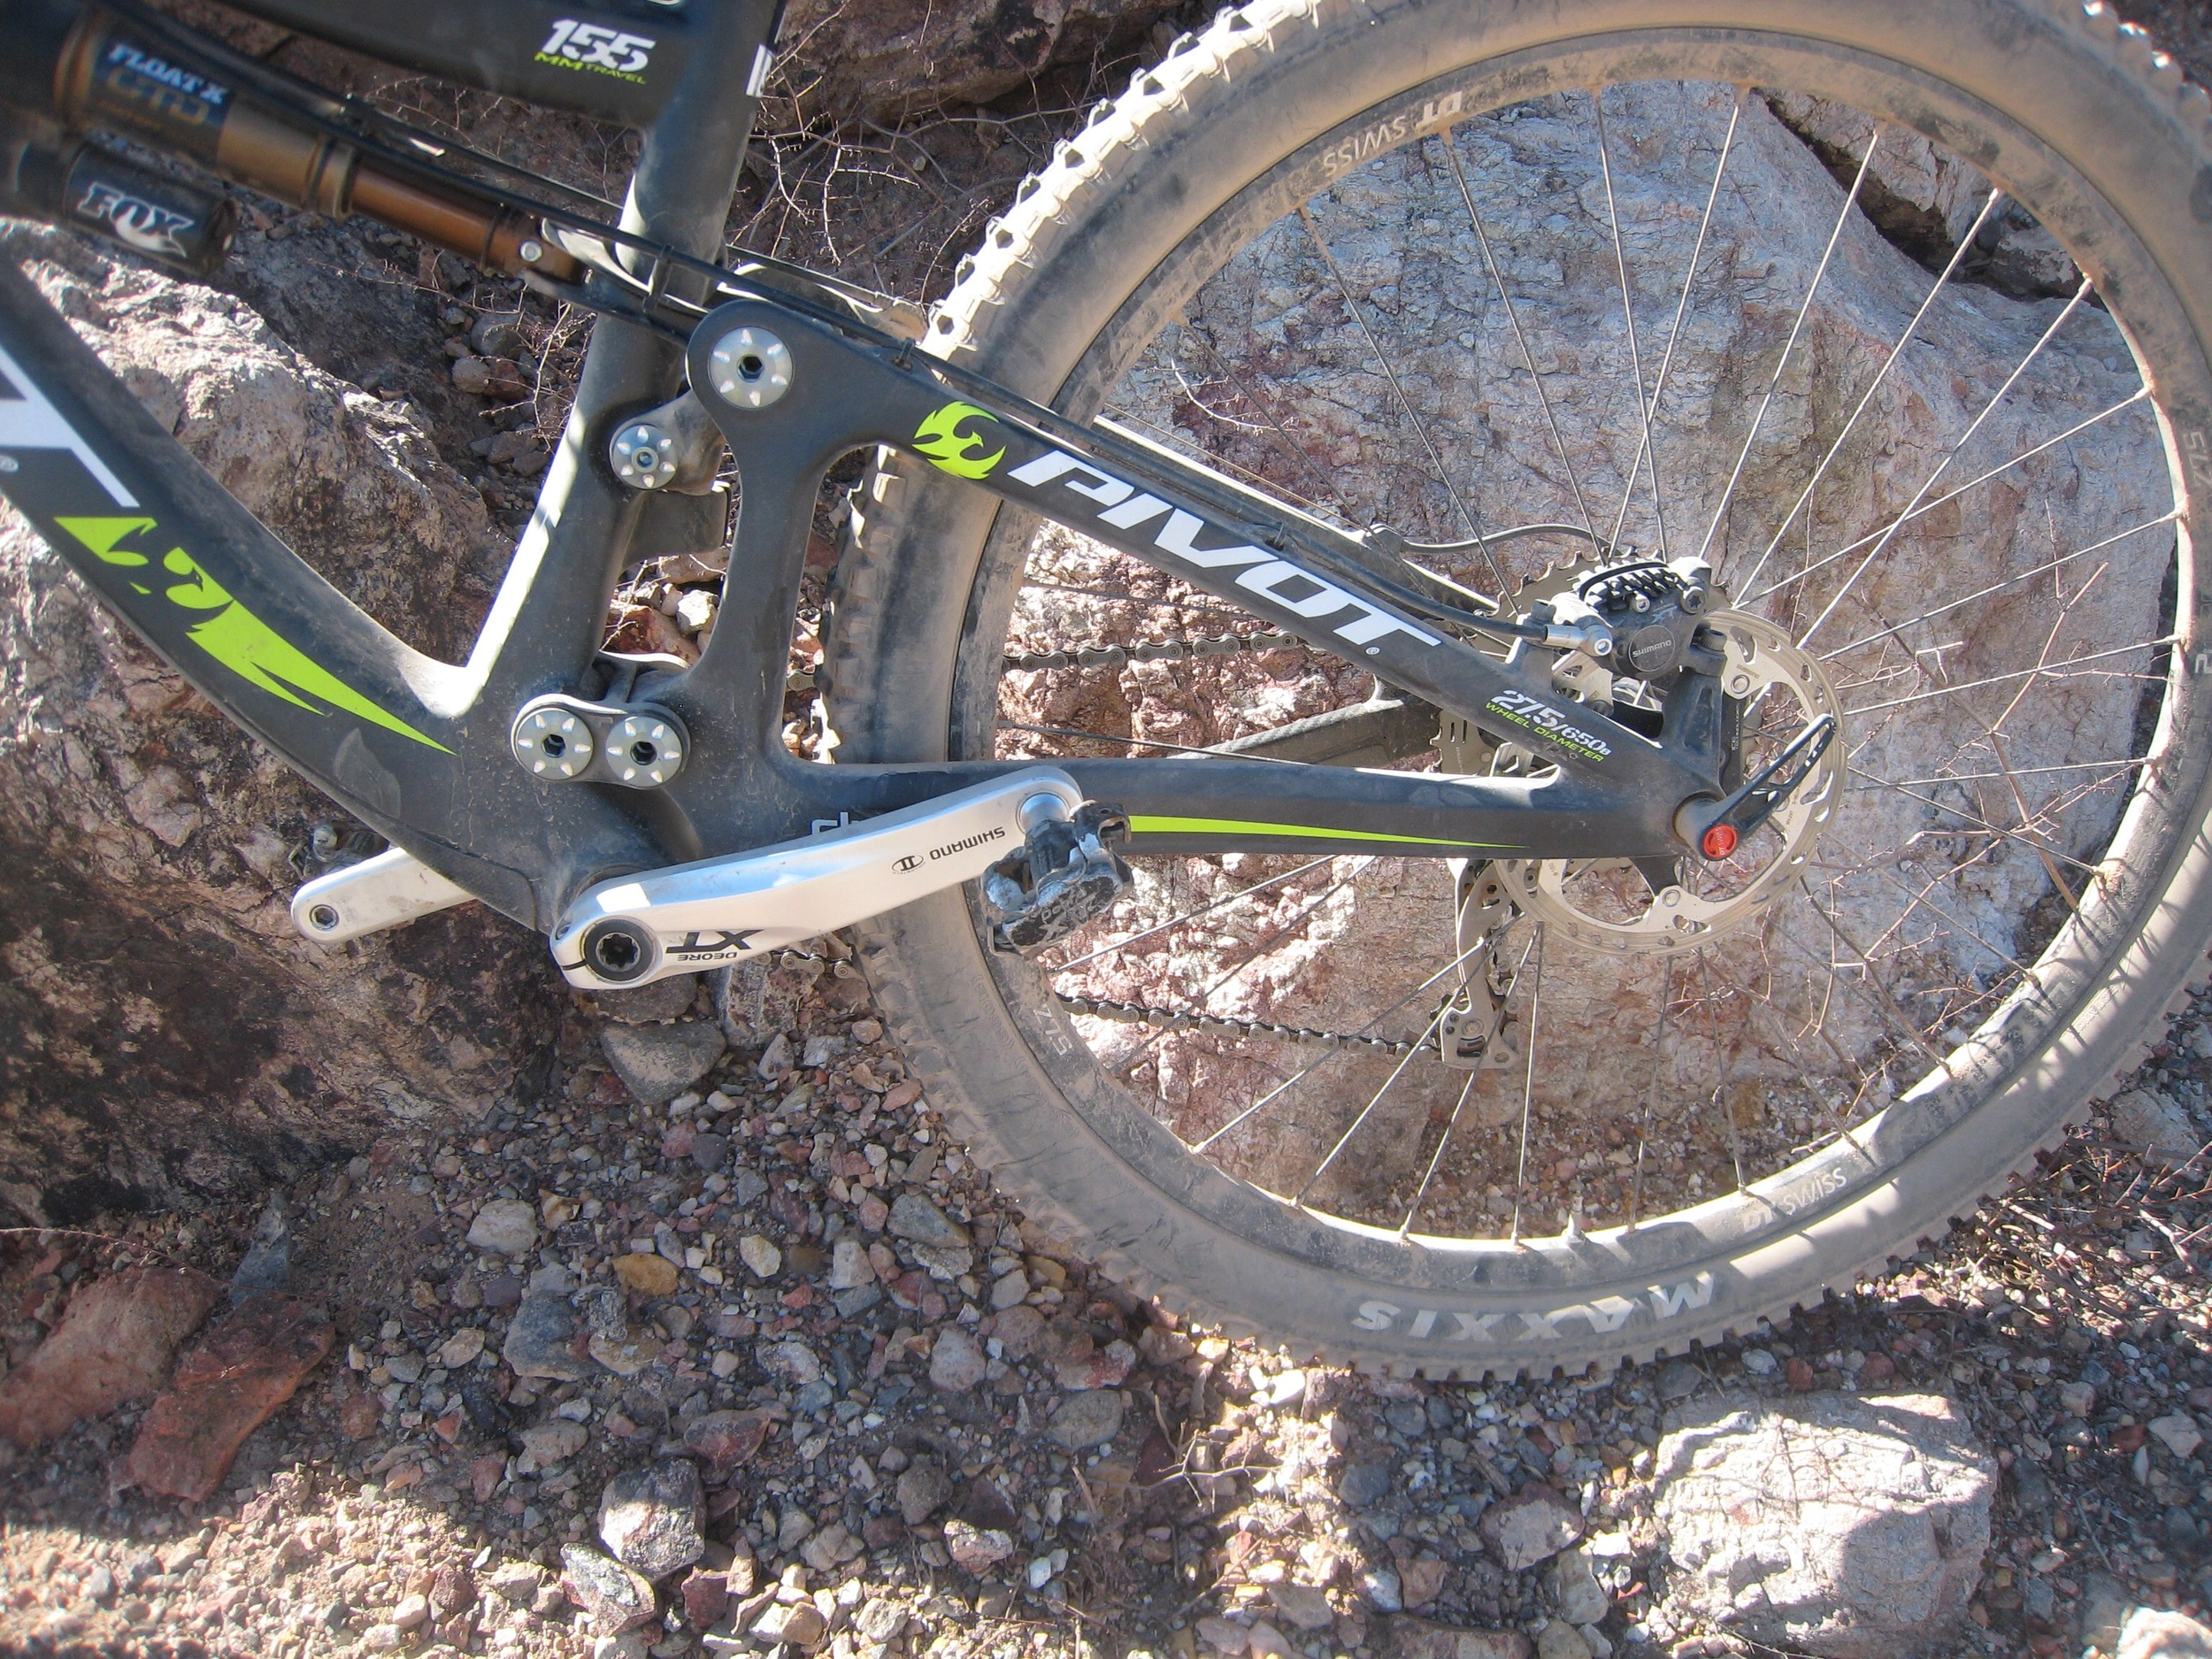 Dw-link suspension has an initial rearward travel to reduce suspension squatting.